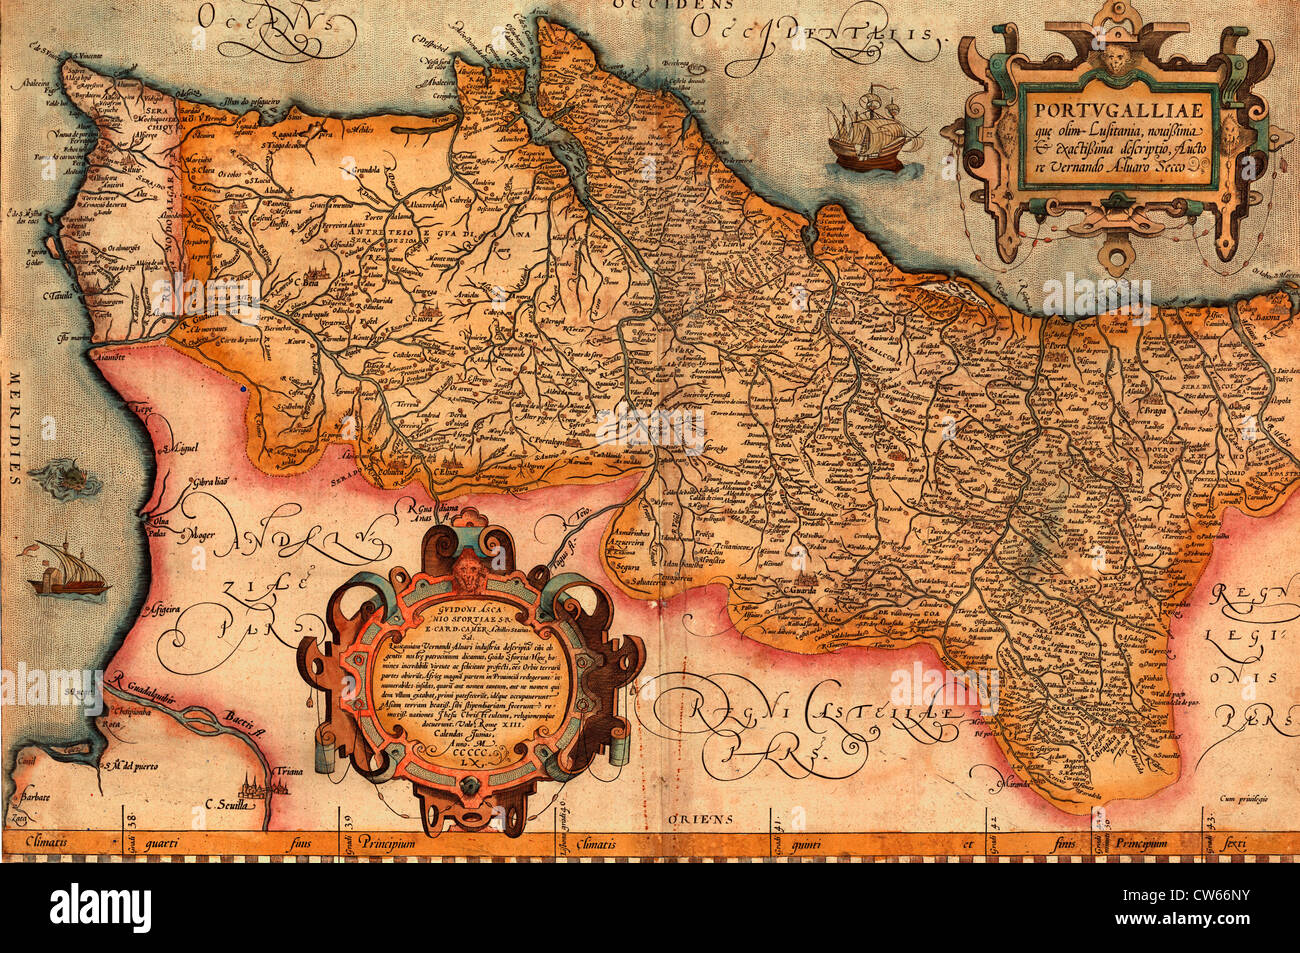 Map of Portugal, circa 1579 - Stock Image